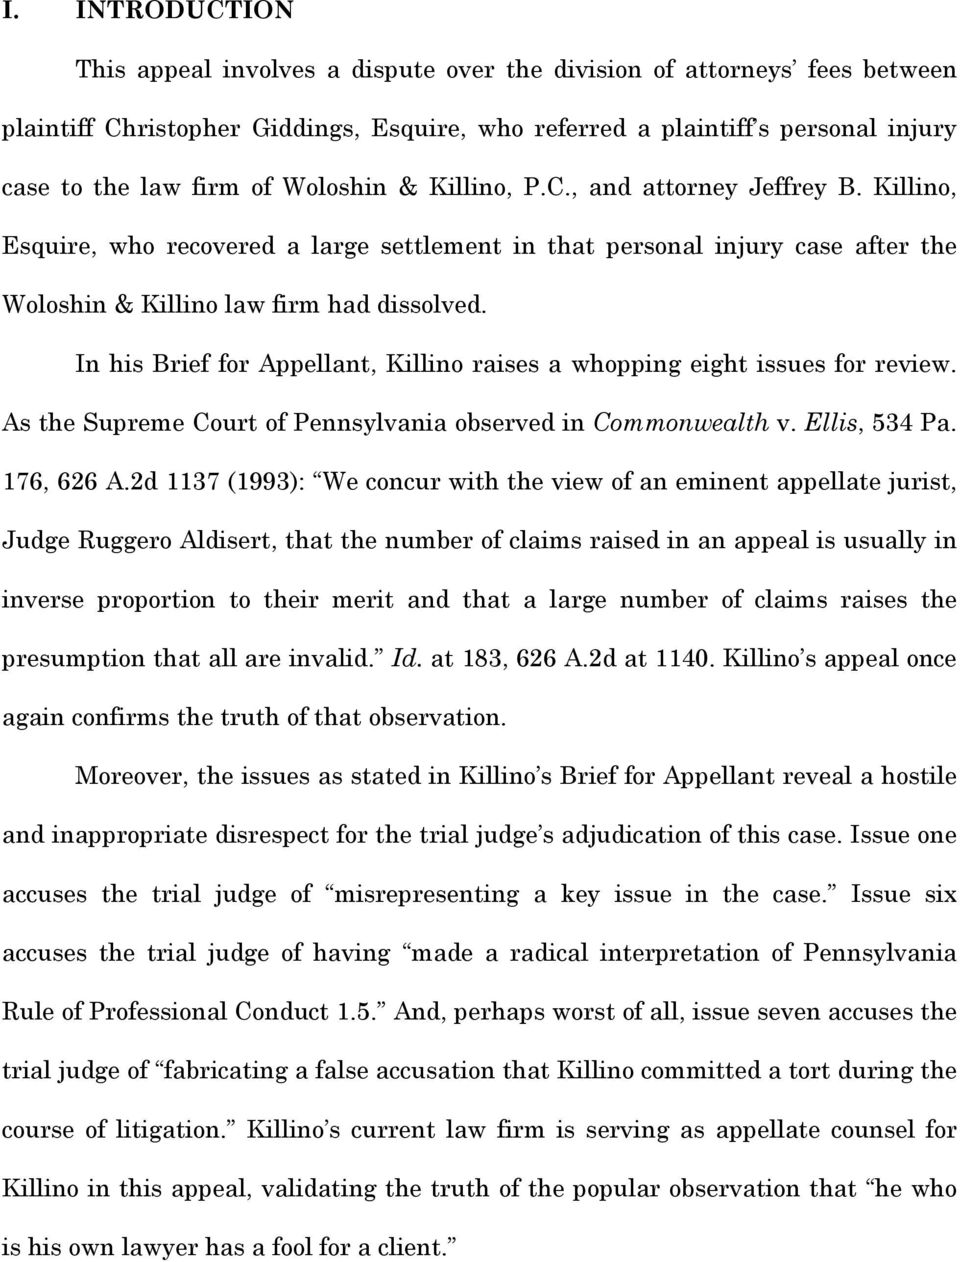 In his Brief for Appellant, Killino raises a whopping eight issues for review. As the Supreme Court of Pennsylvania observed in Commonwealth v. Ellis, 534 Pa. 176, 626 A.